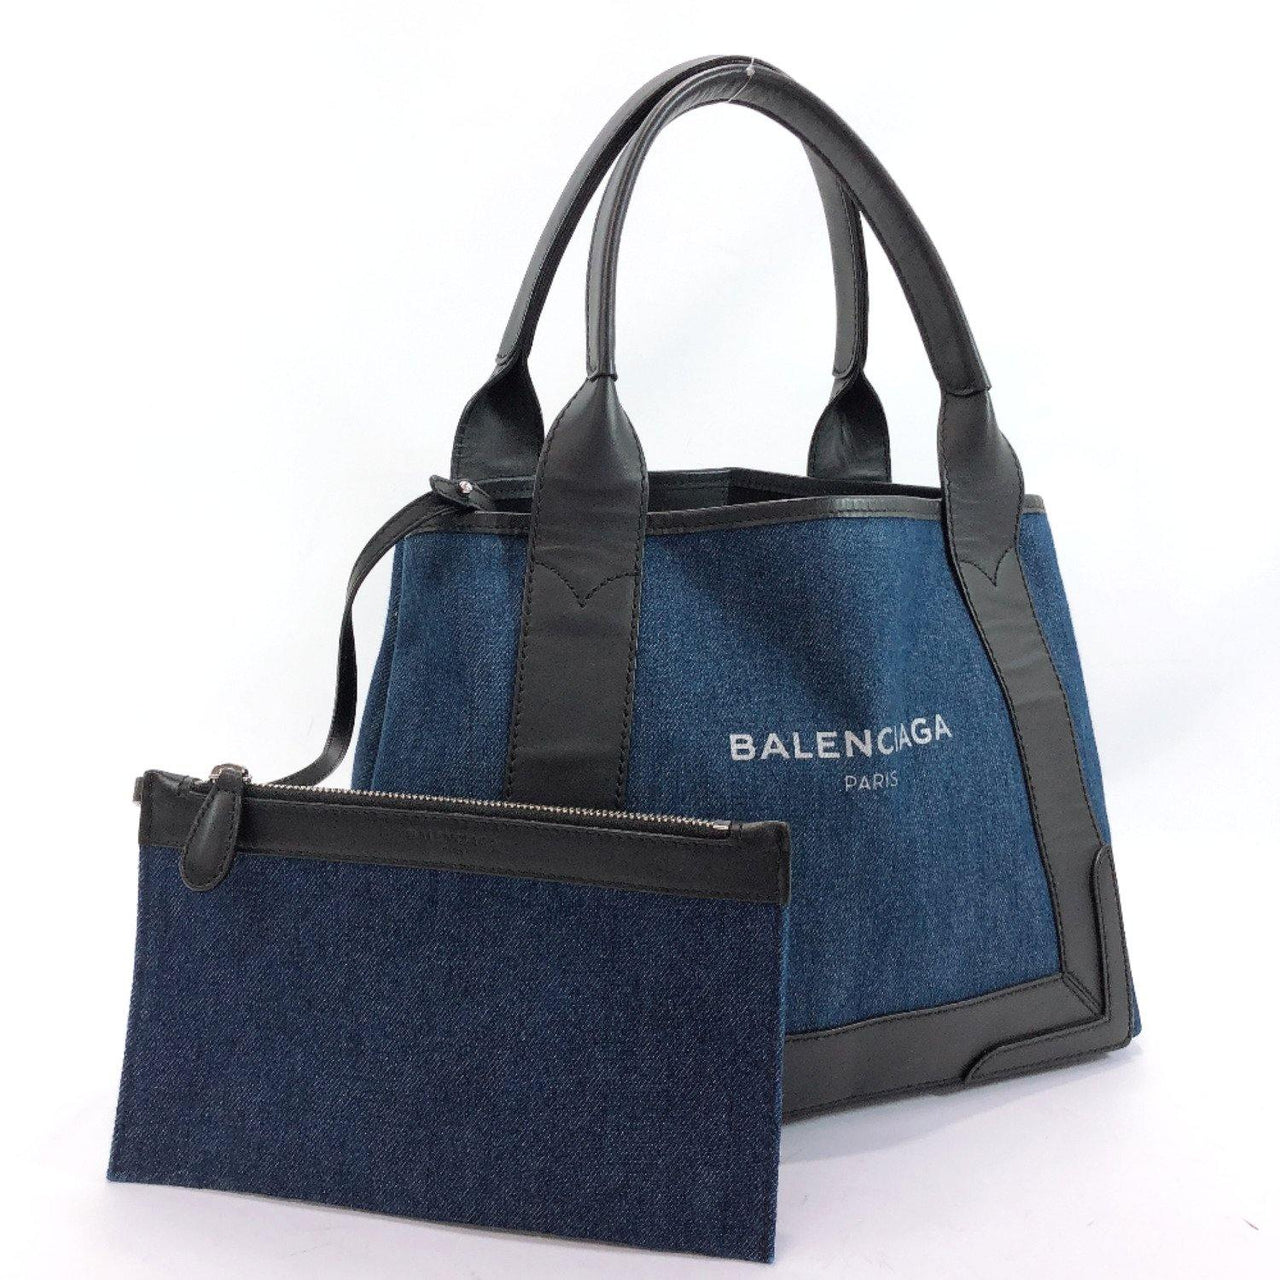 BALENCIAGA Tote Bag 339933 Navy Kabas denim/leather Navy black Women Used - JP-BRANDS.com